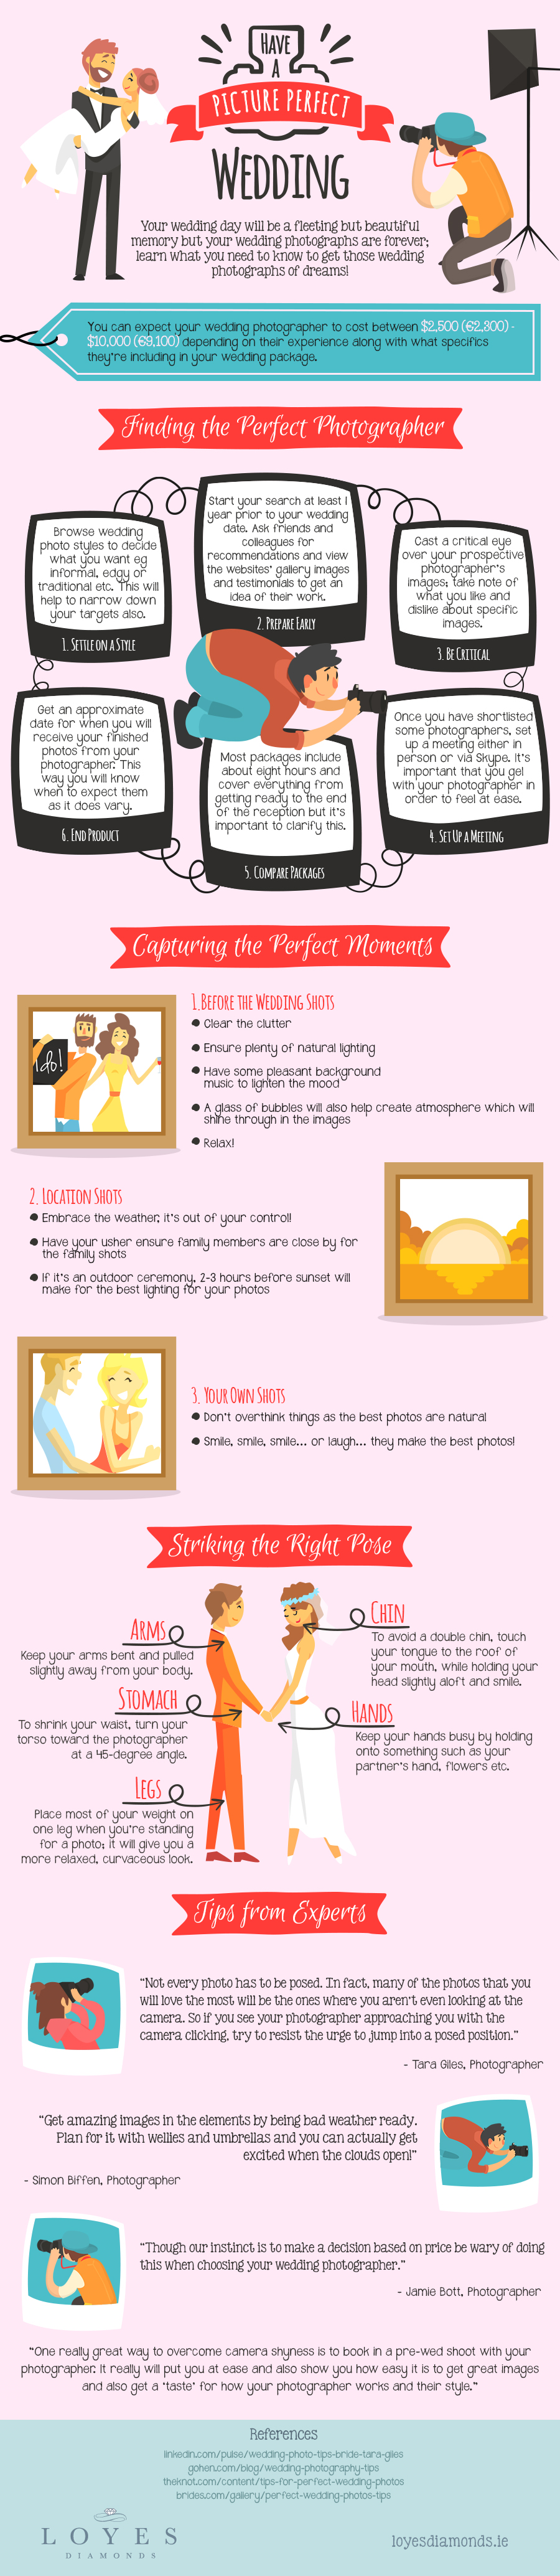 Get-a-Picture-Perfect-Wedding-infographic